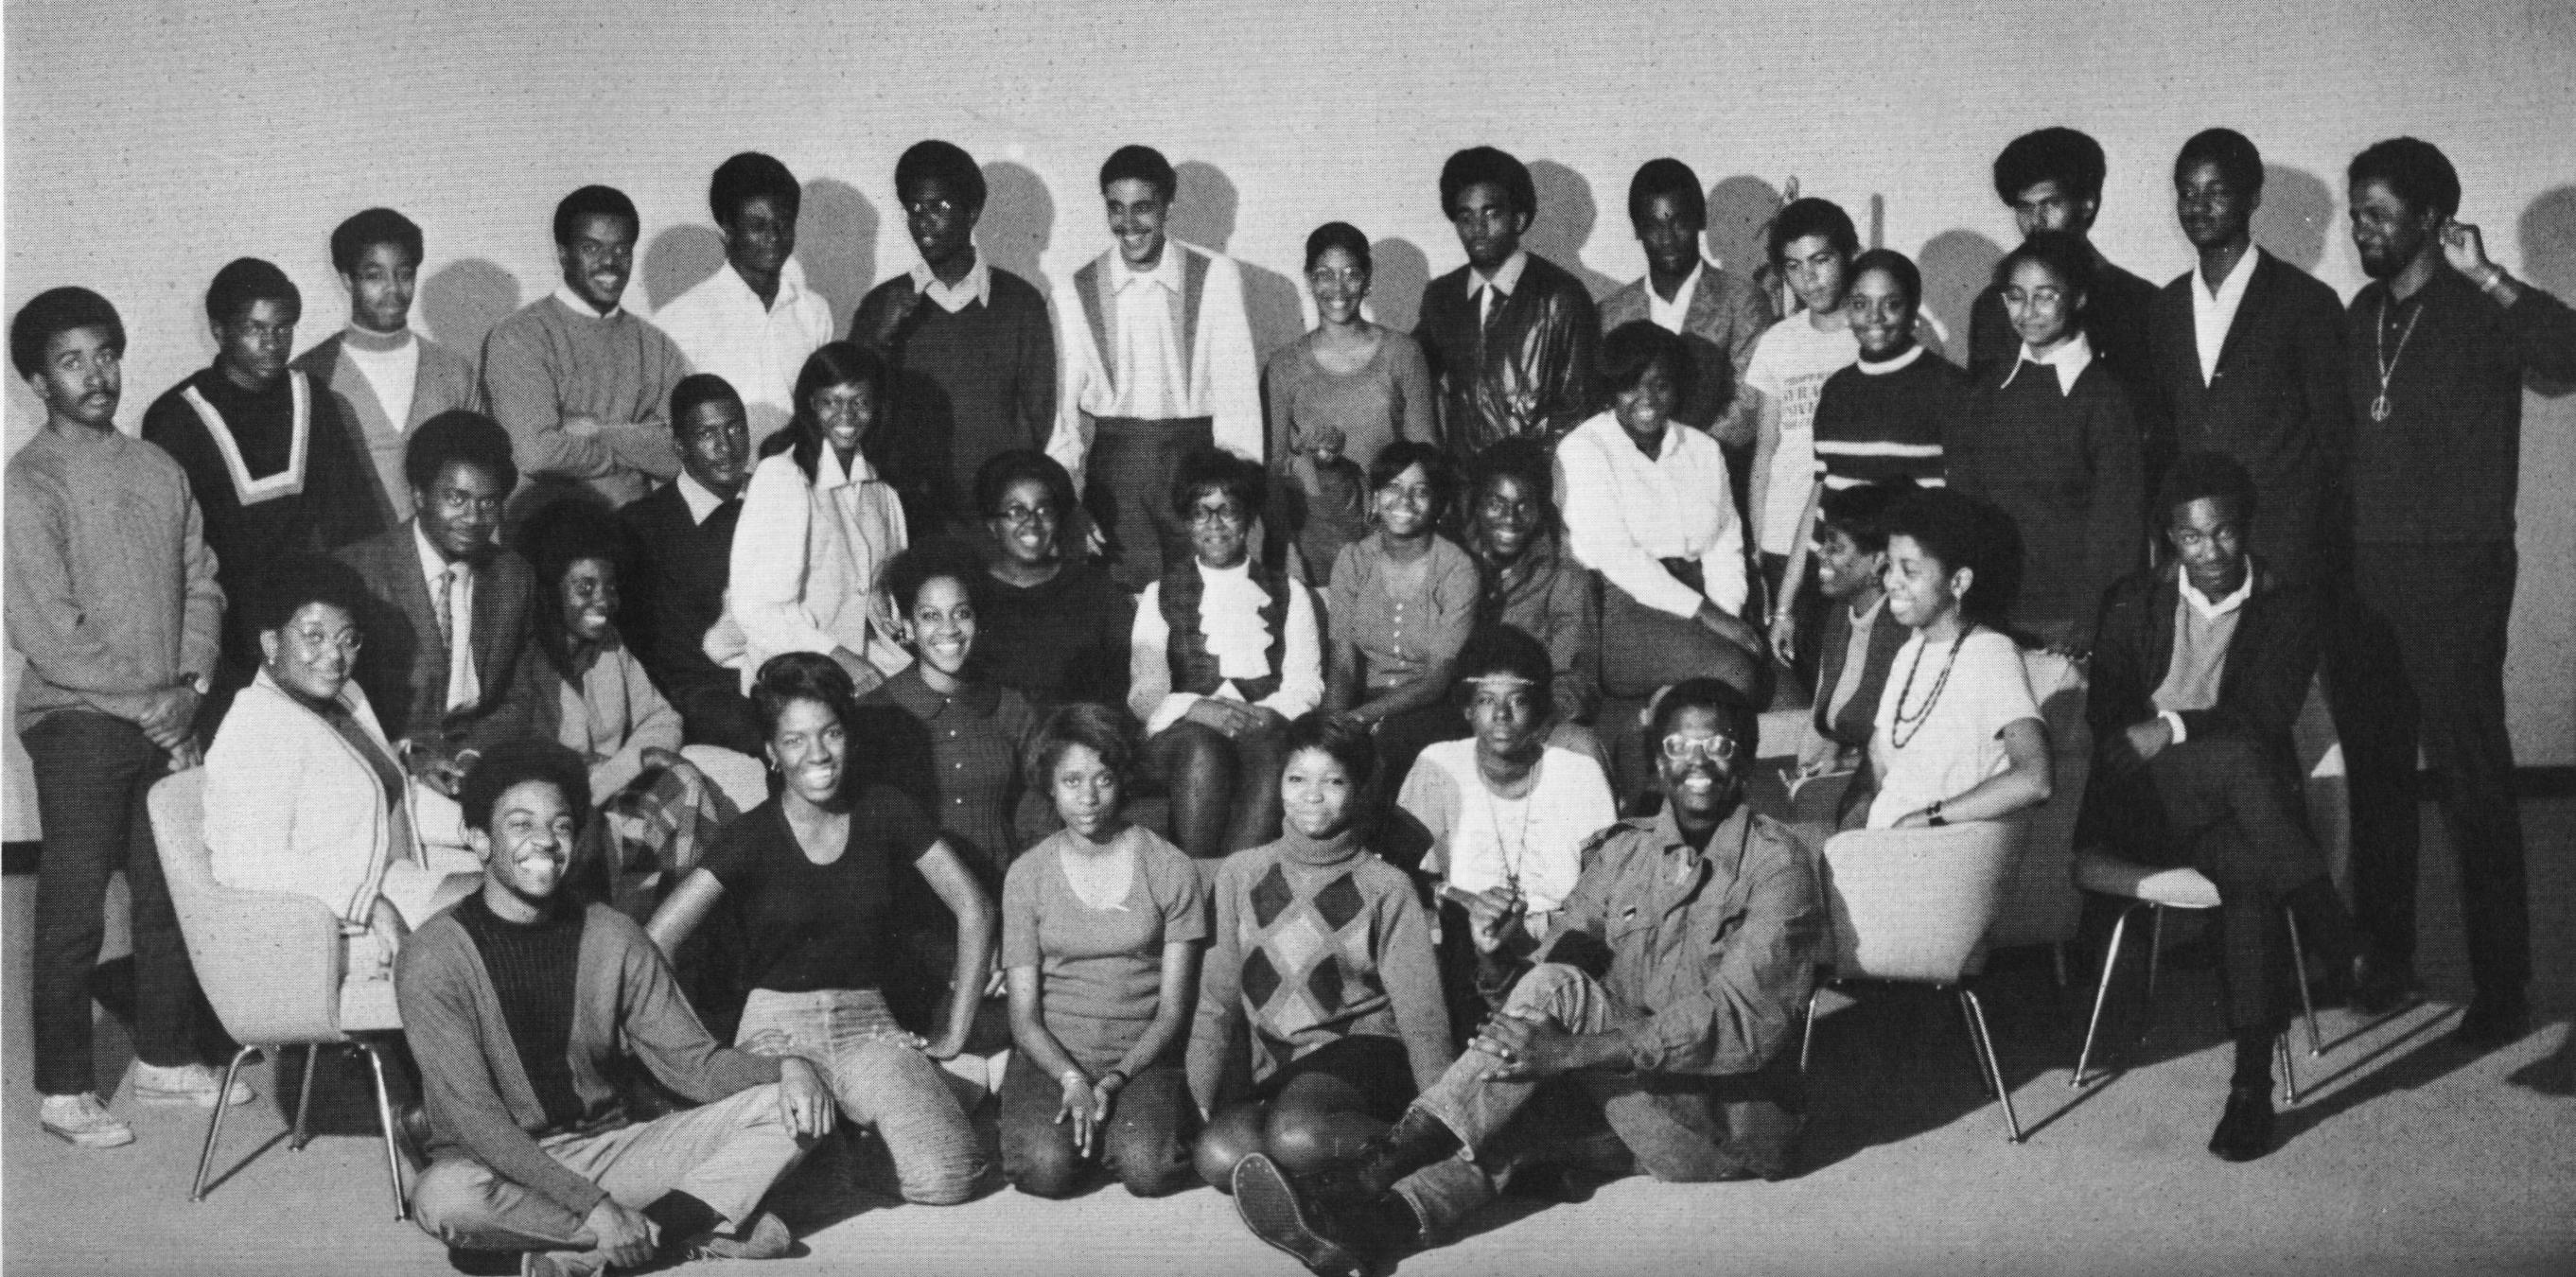 Group photo of Black Student Union members in 1970s